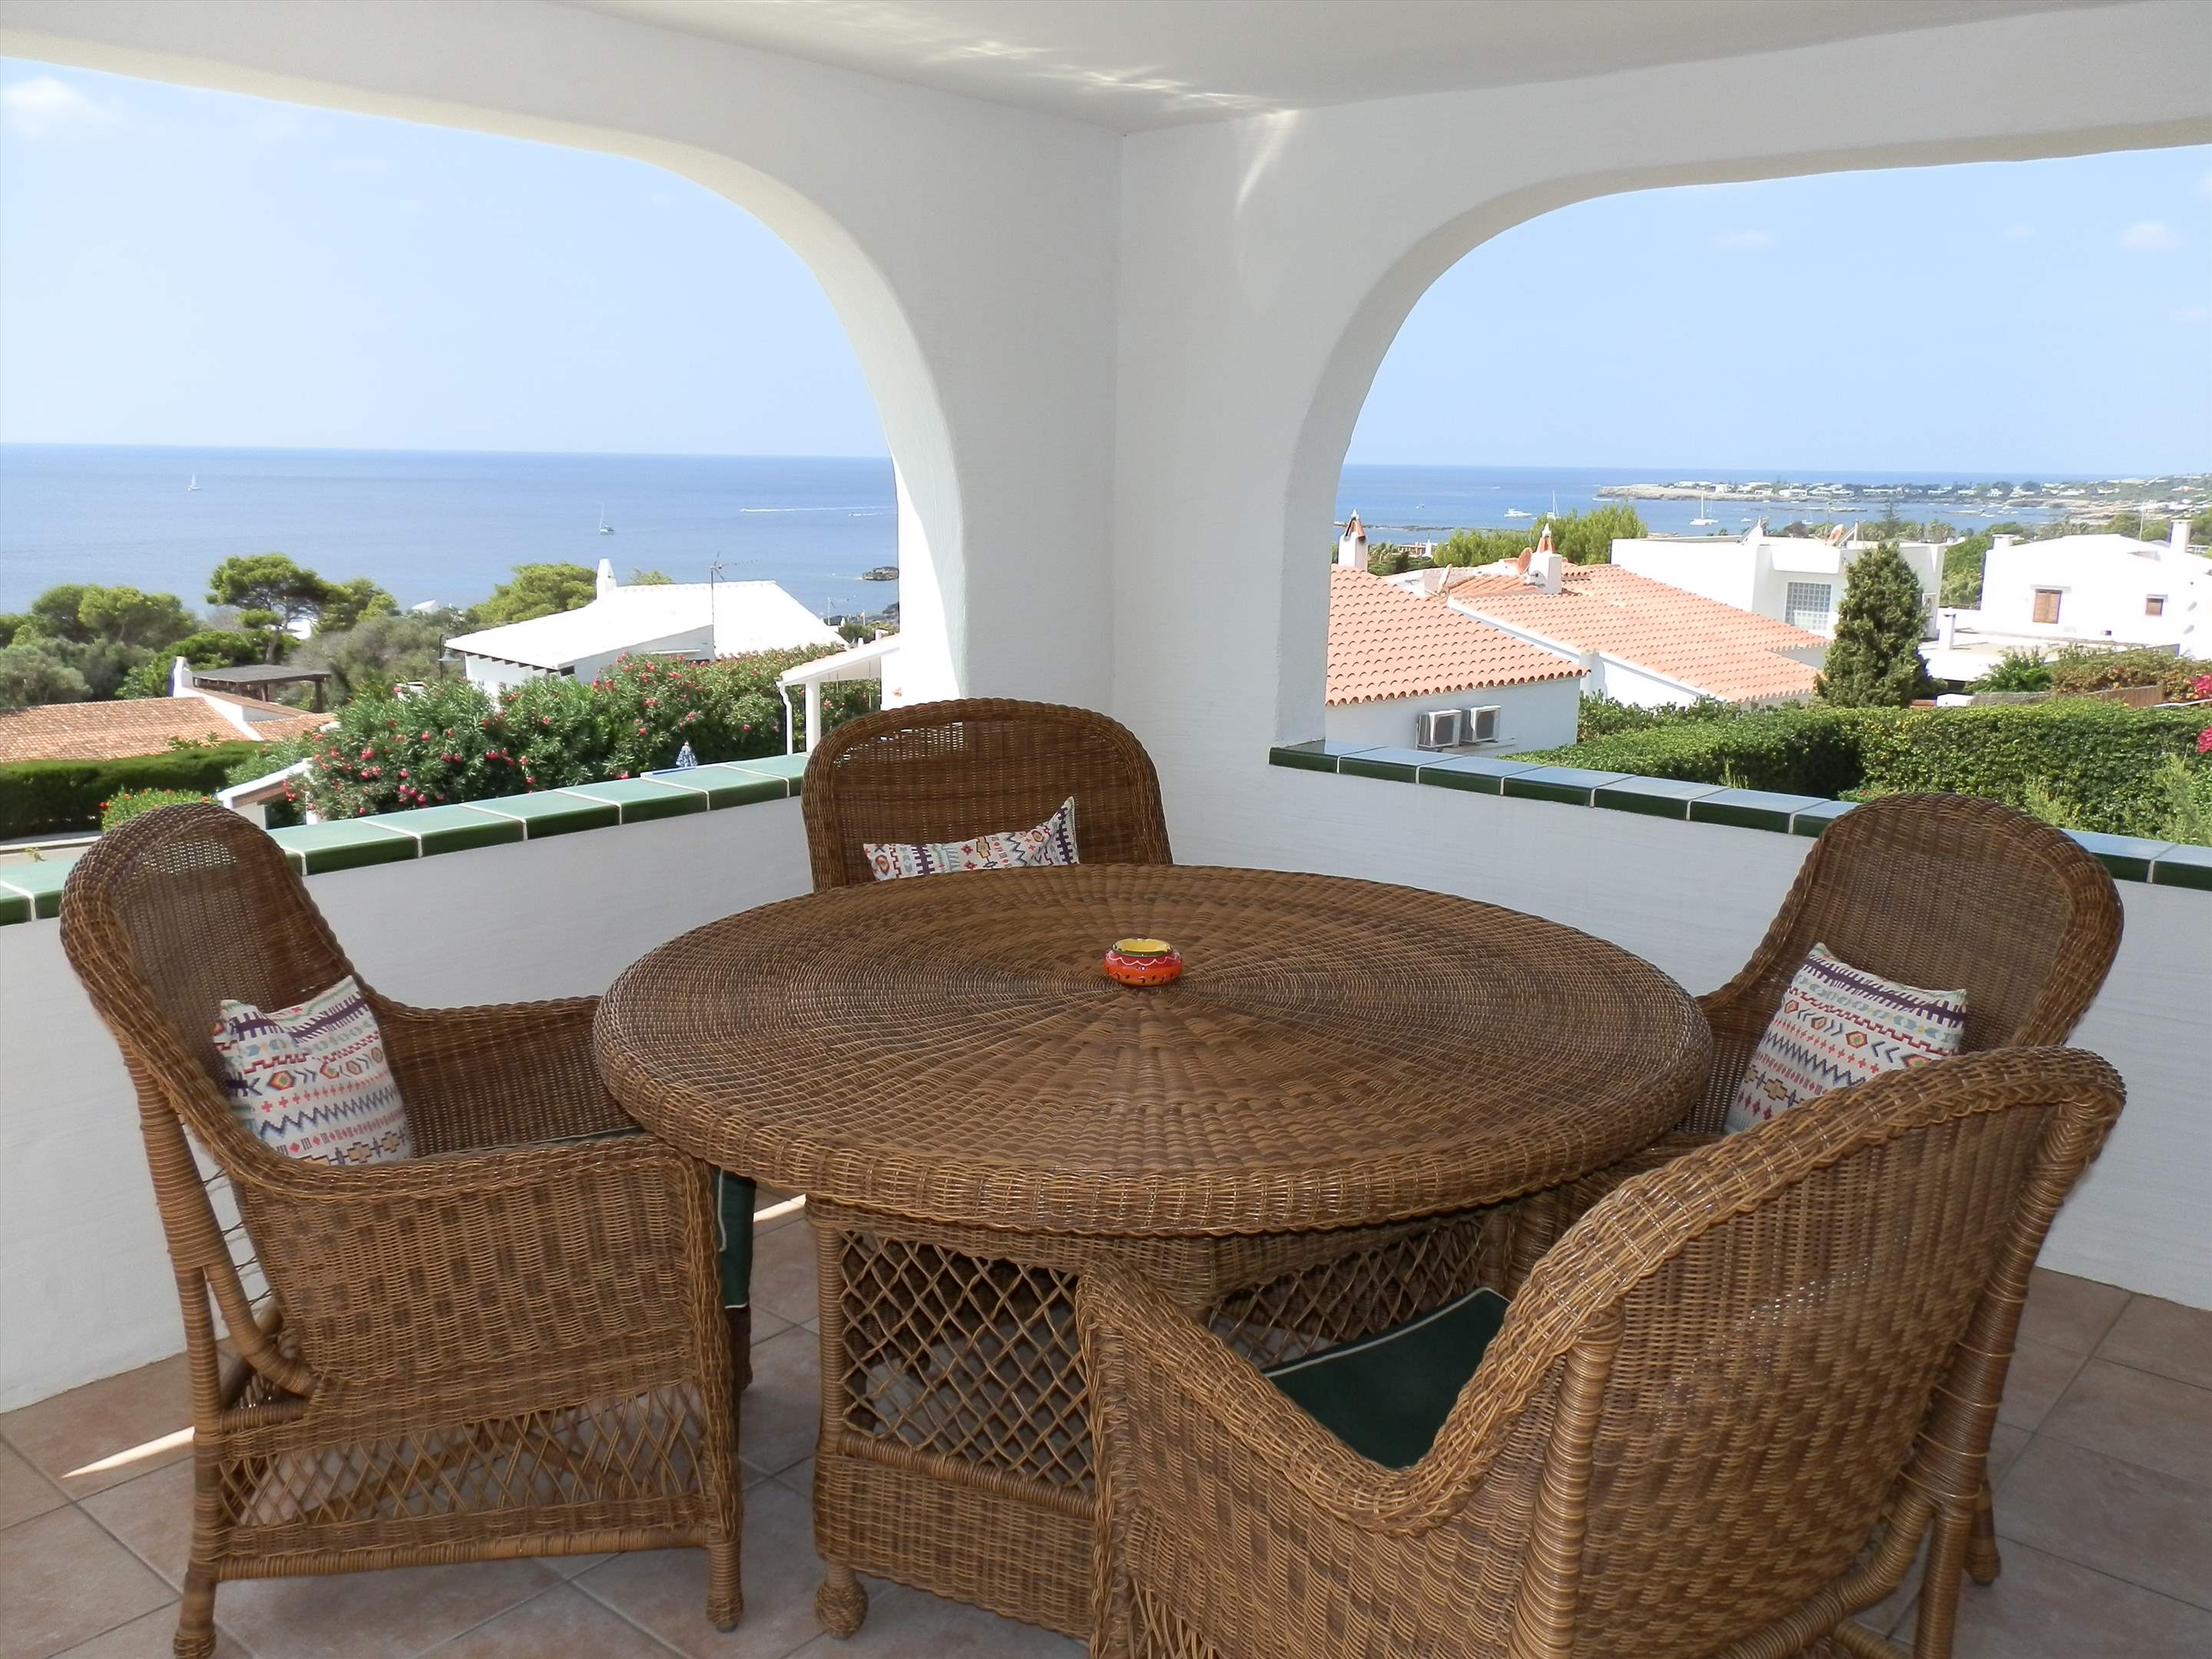 Villa La Palmera, 4 bedroom villa in Mahon, San Luis & South East, Menorca Photo #4